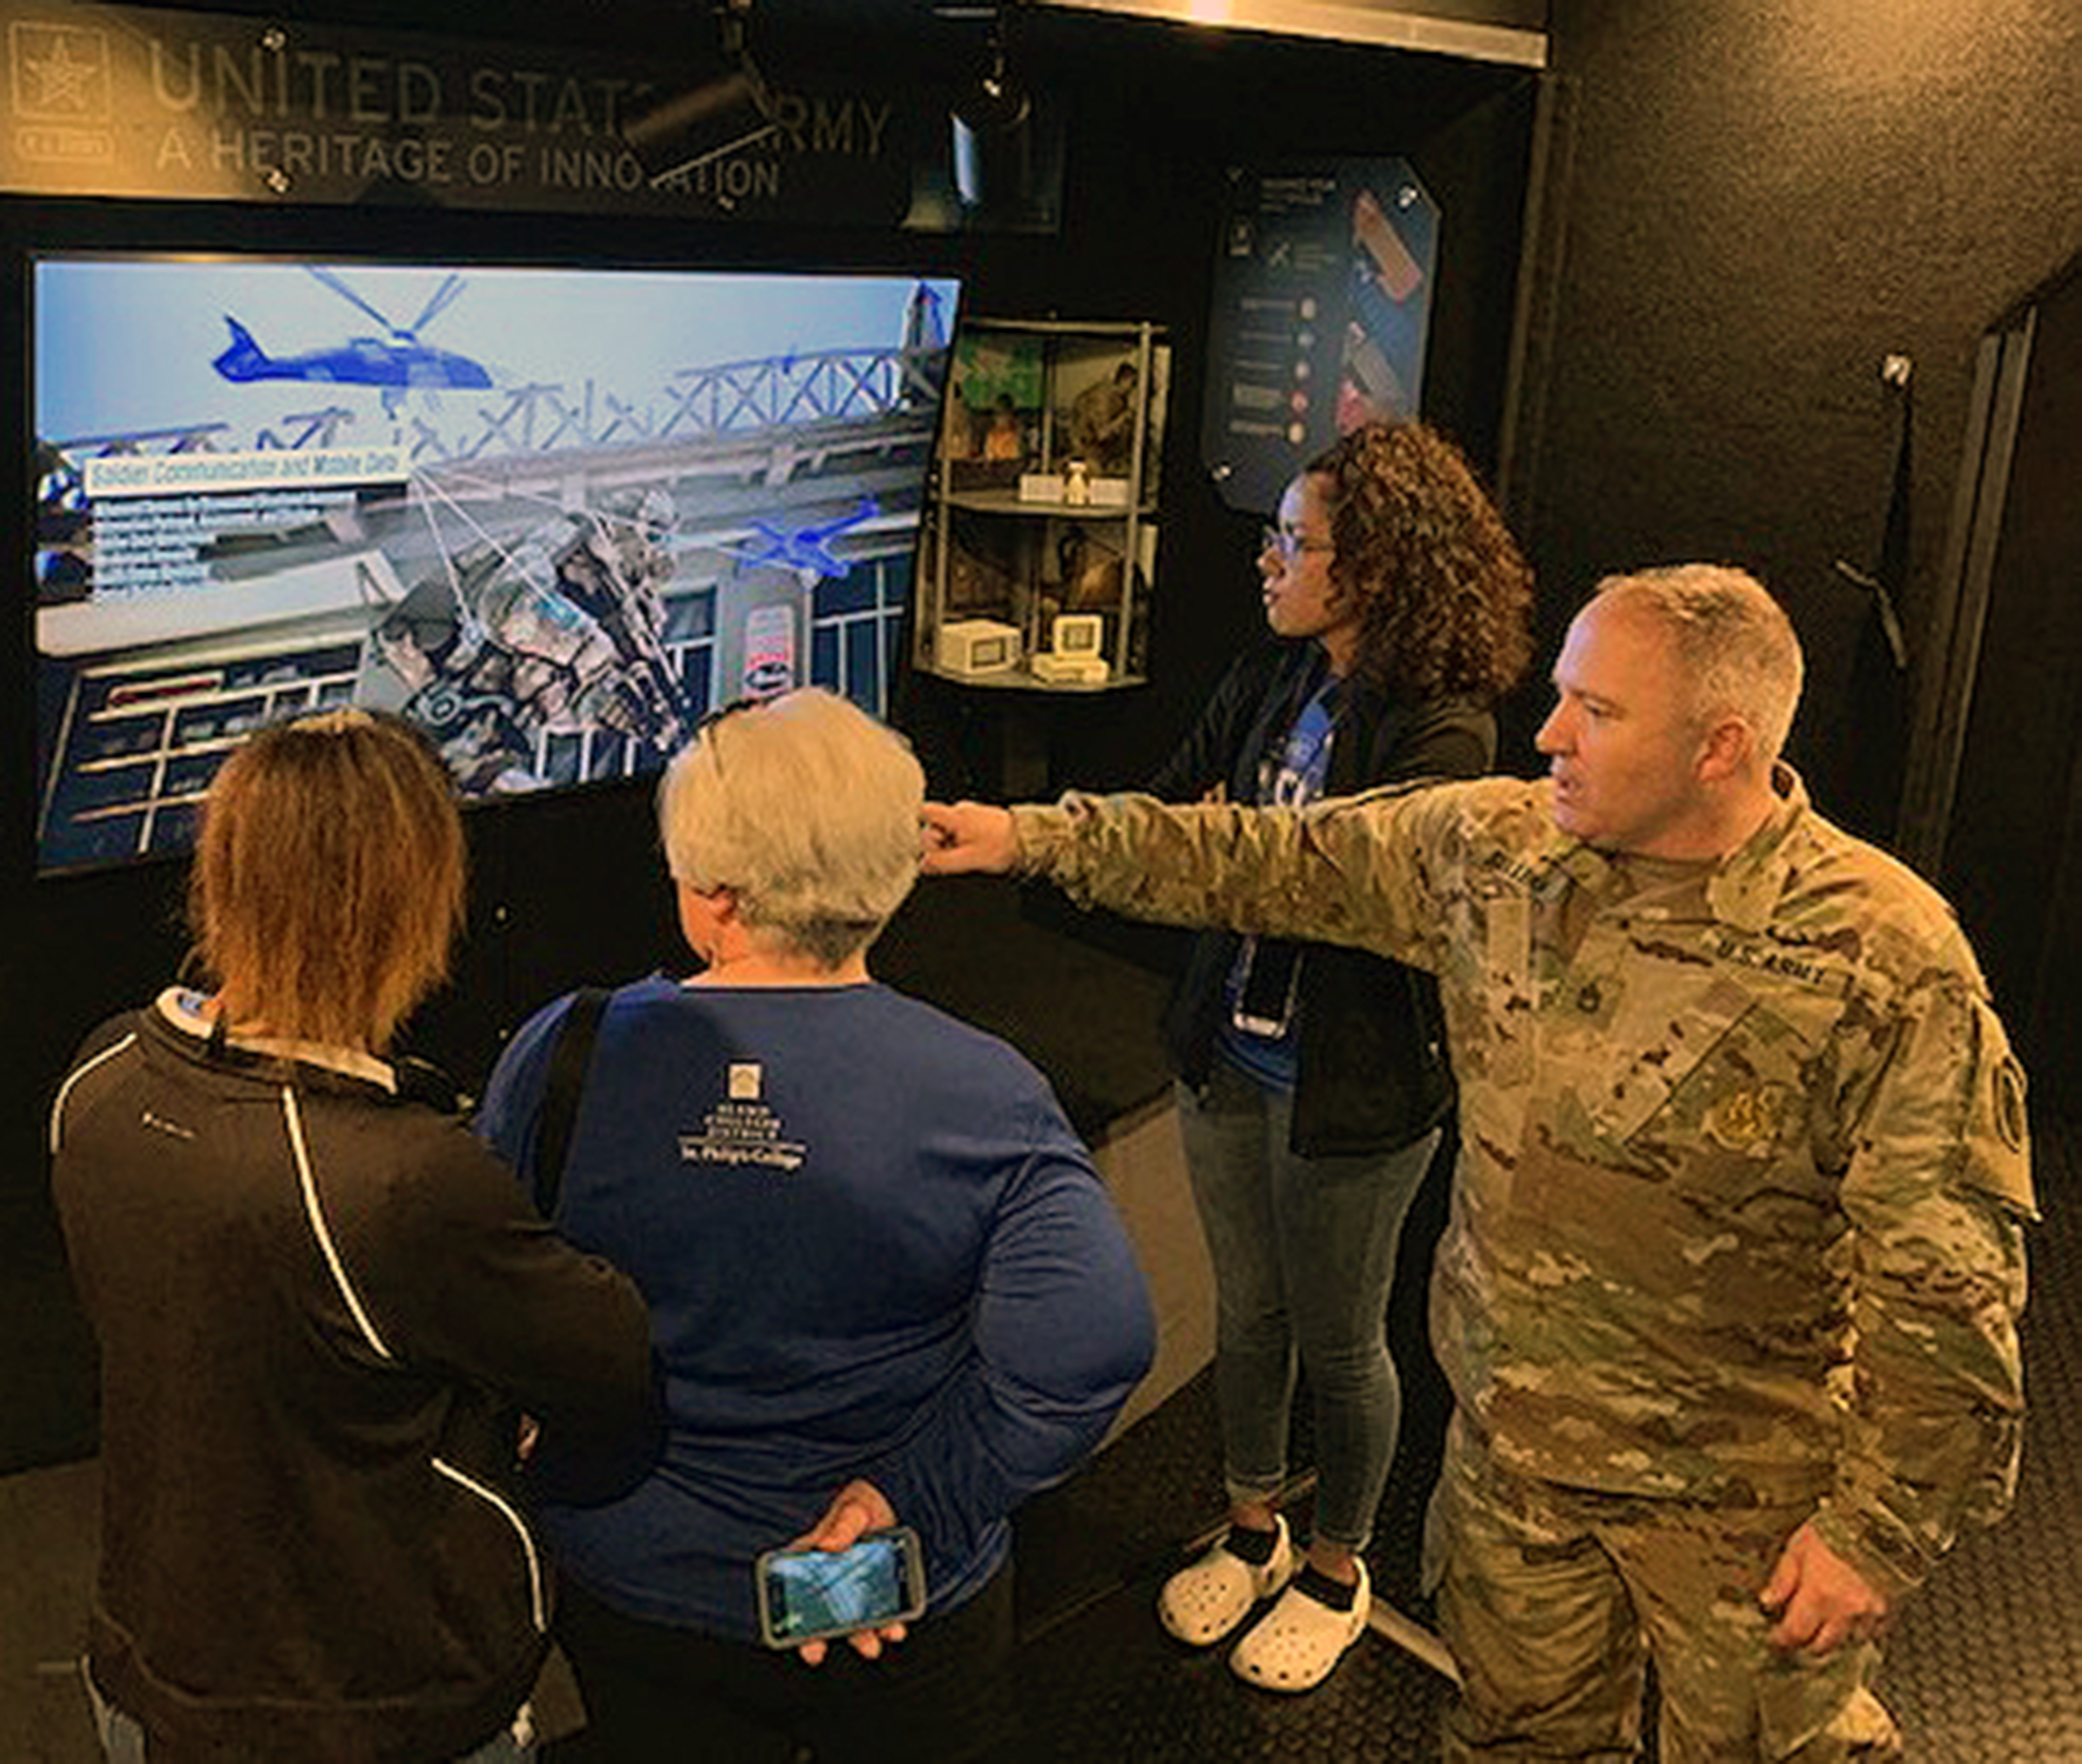 Mobile Exhibit At San Antonio Spurs Game Highlights Army